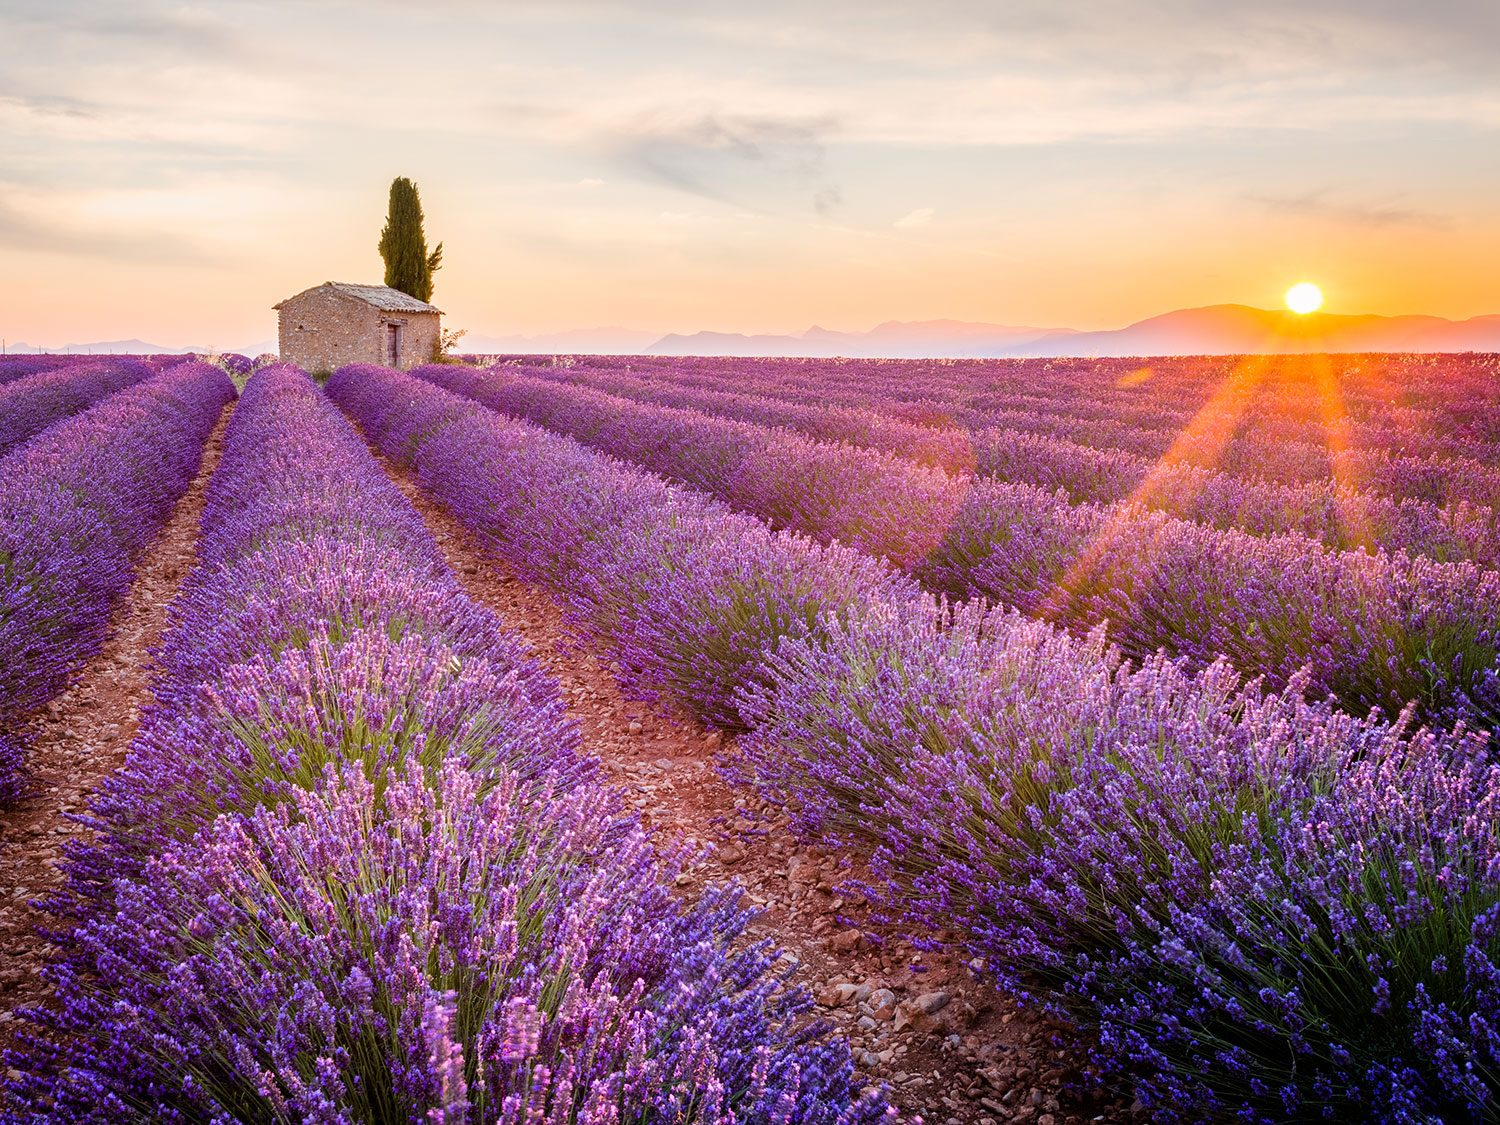 5 Healing Uses For Lavender